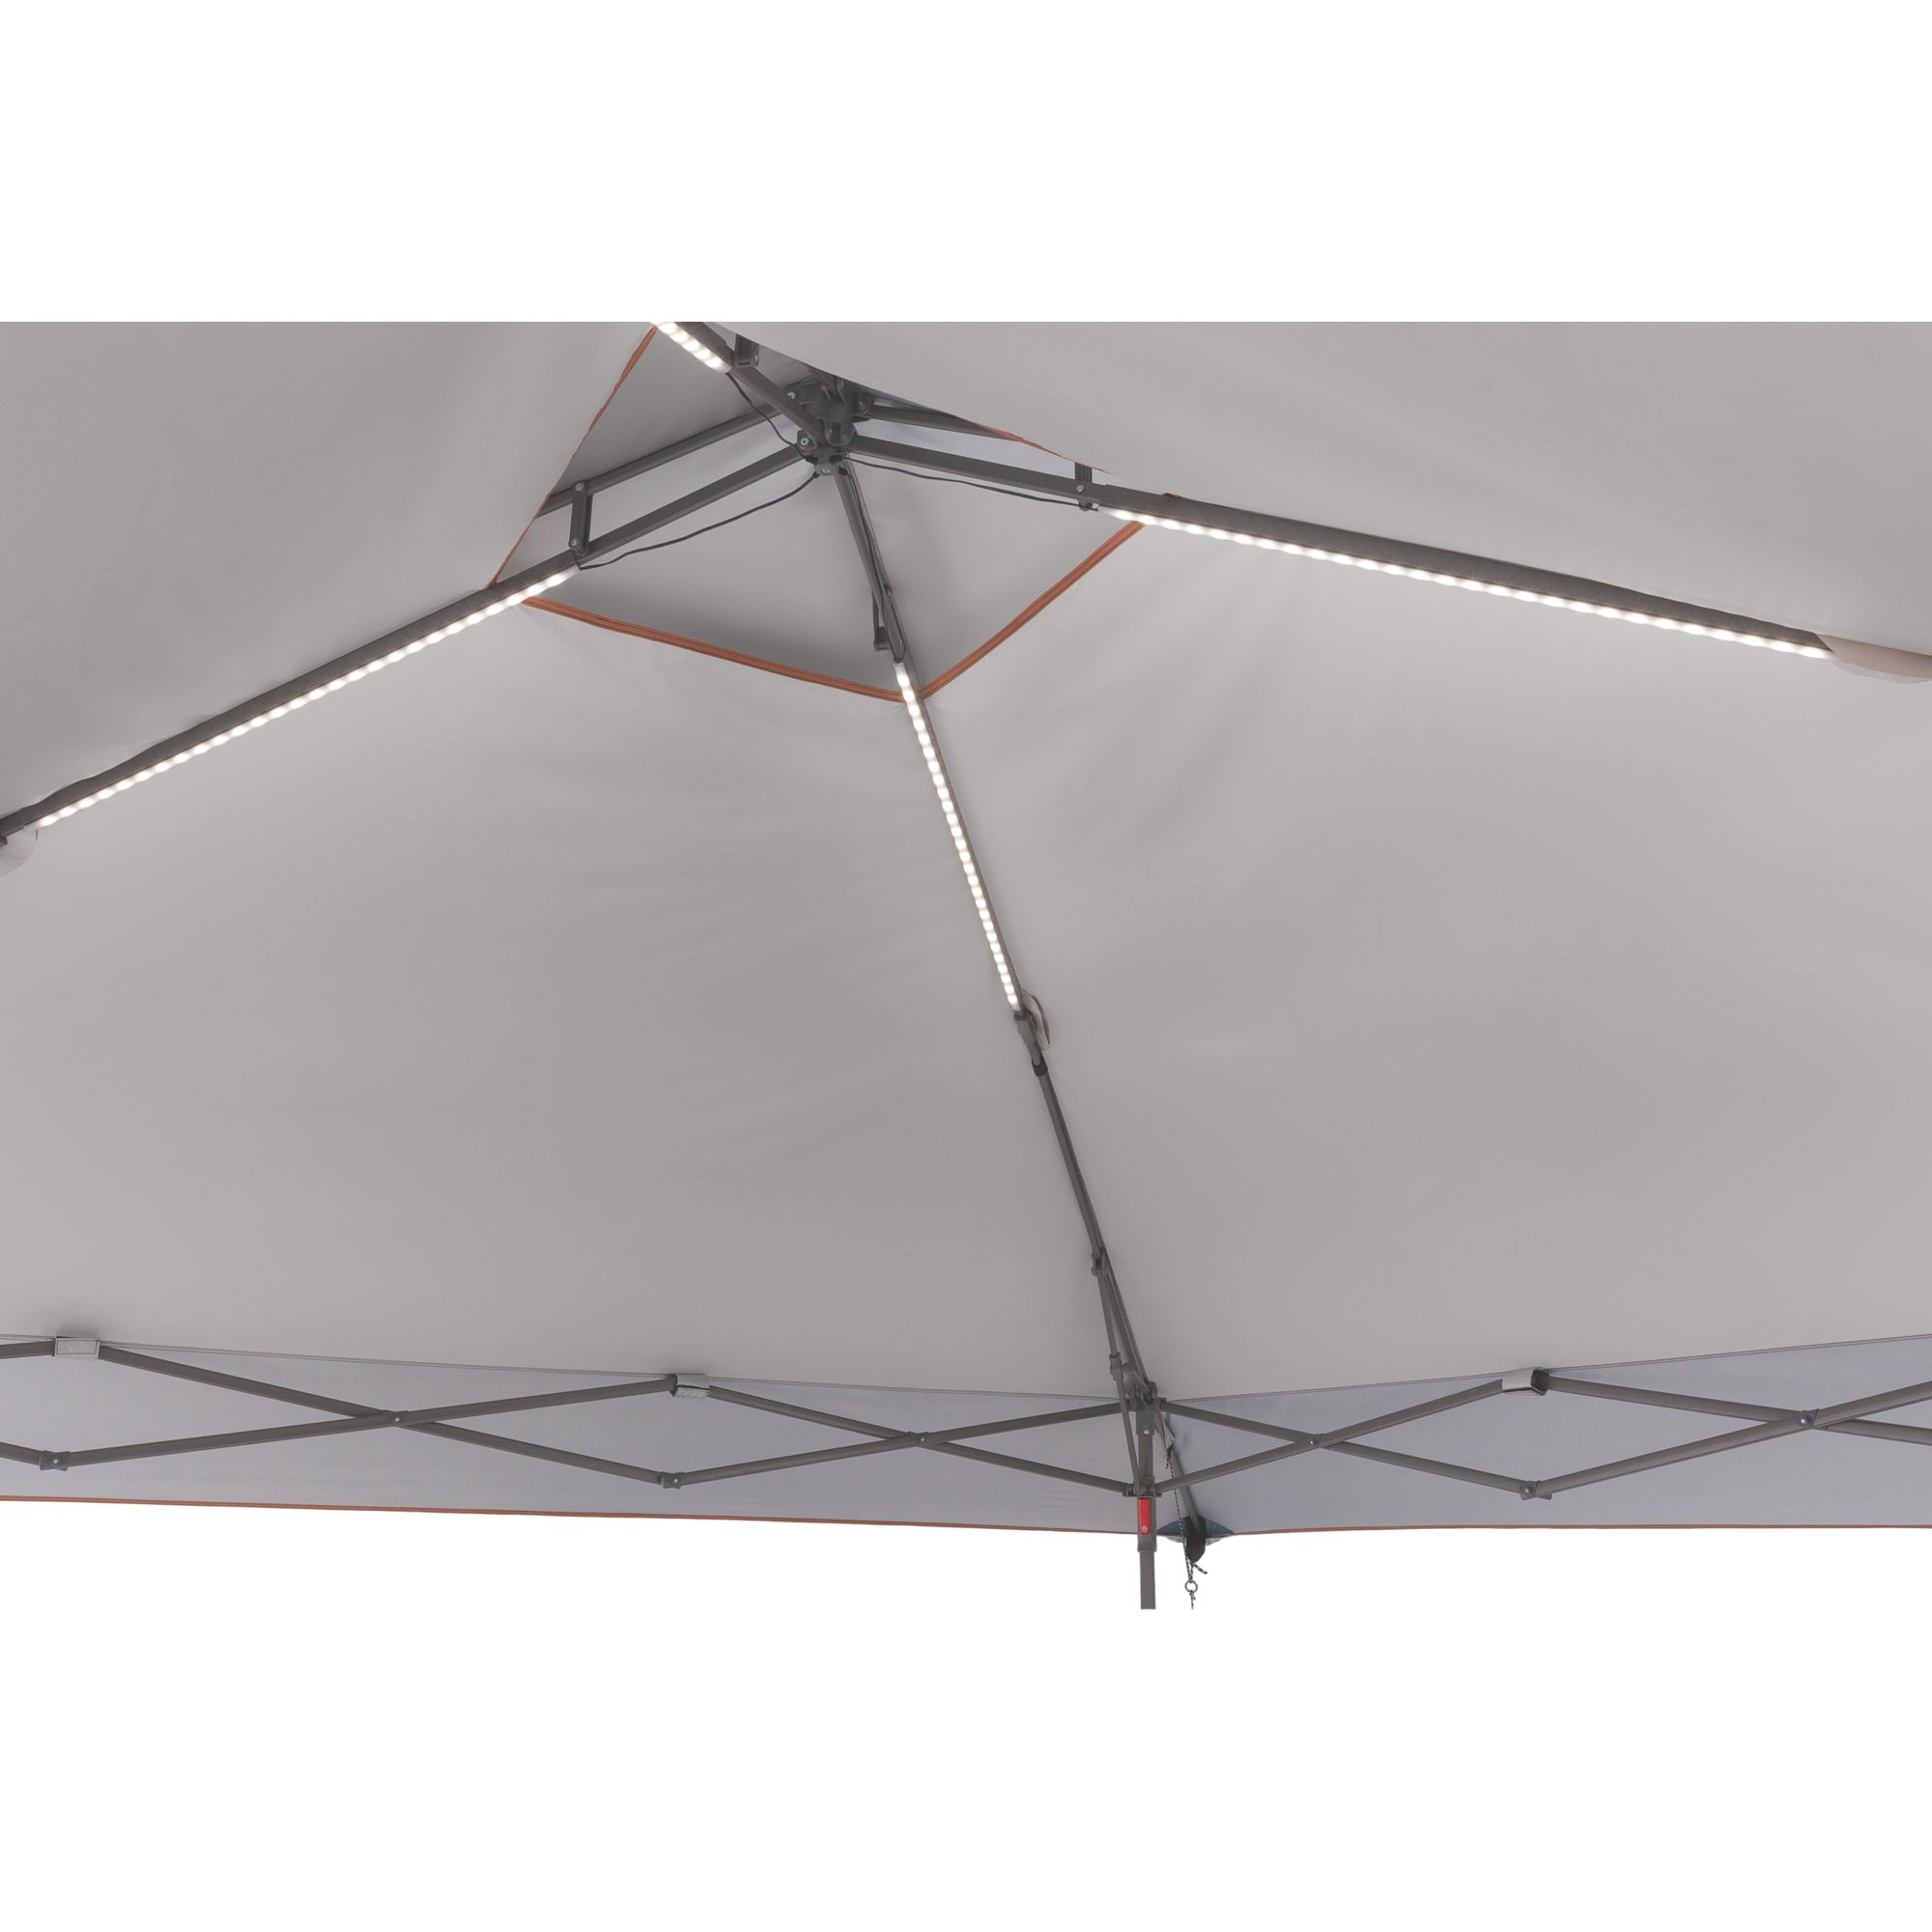 All Night™ 13 x 13 Instant Lighted Eaved Shelter | Coleman